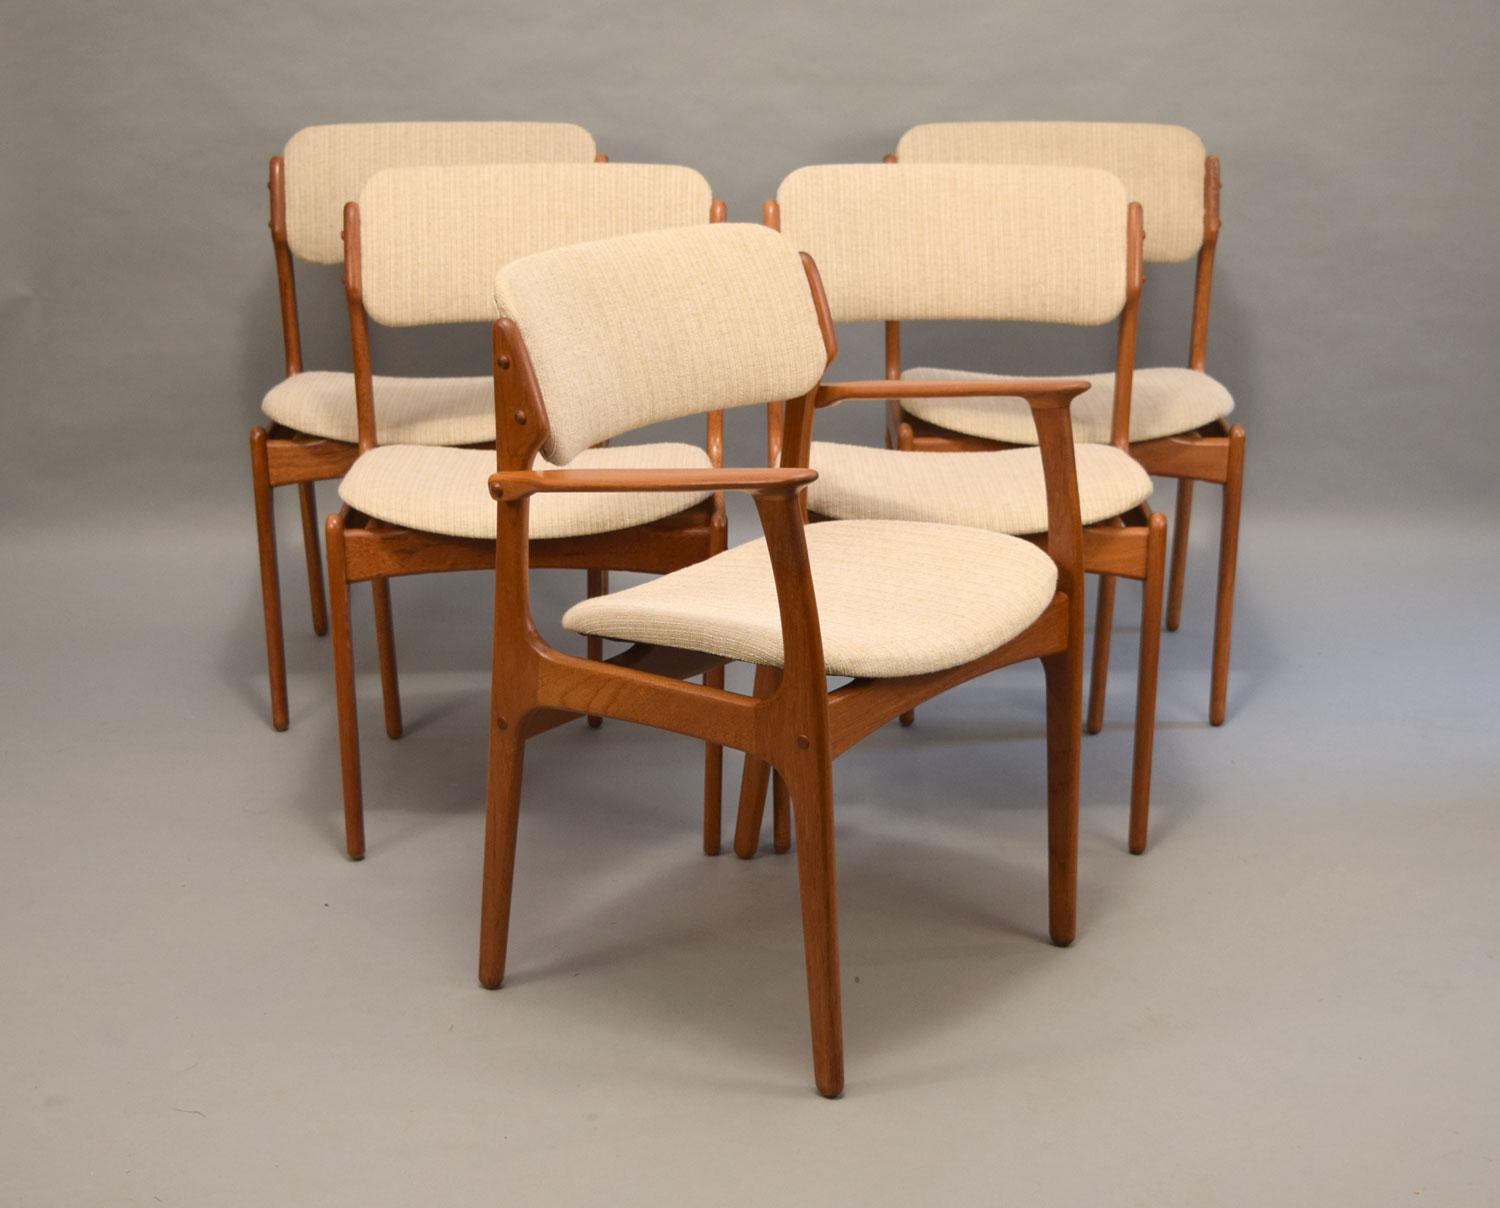 erik buck chairs dayton chair factory on hold floating seat teak dining set of 5 described as some the most comfortable ever made these solid and